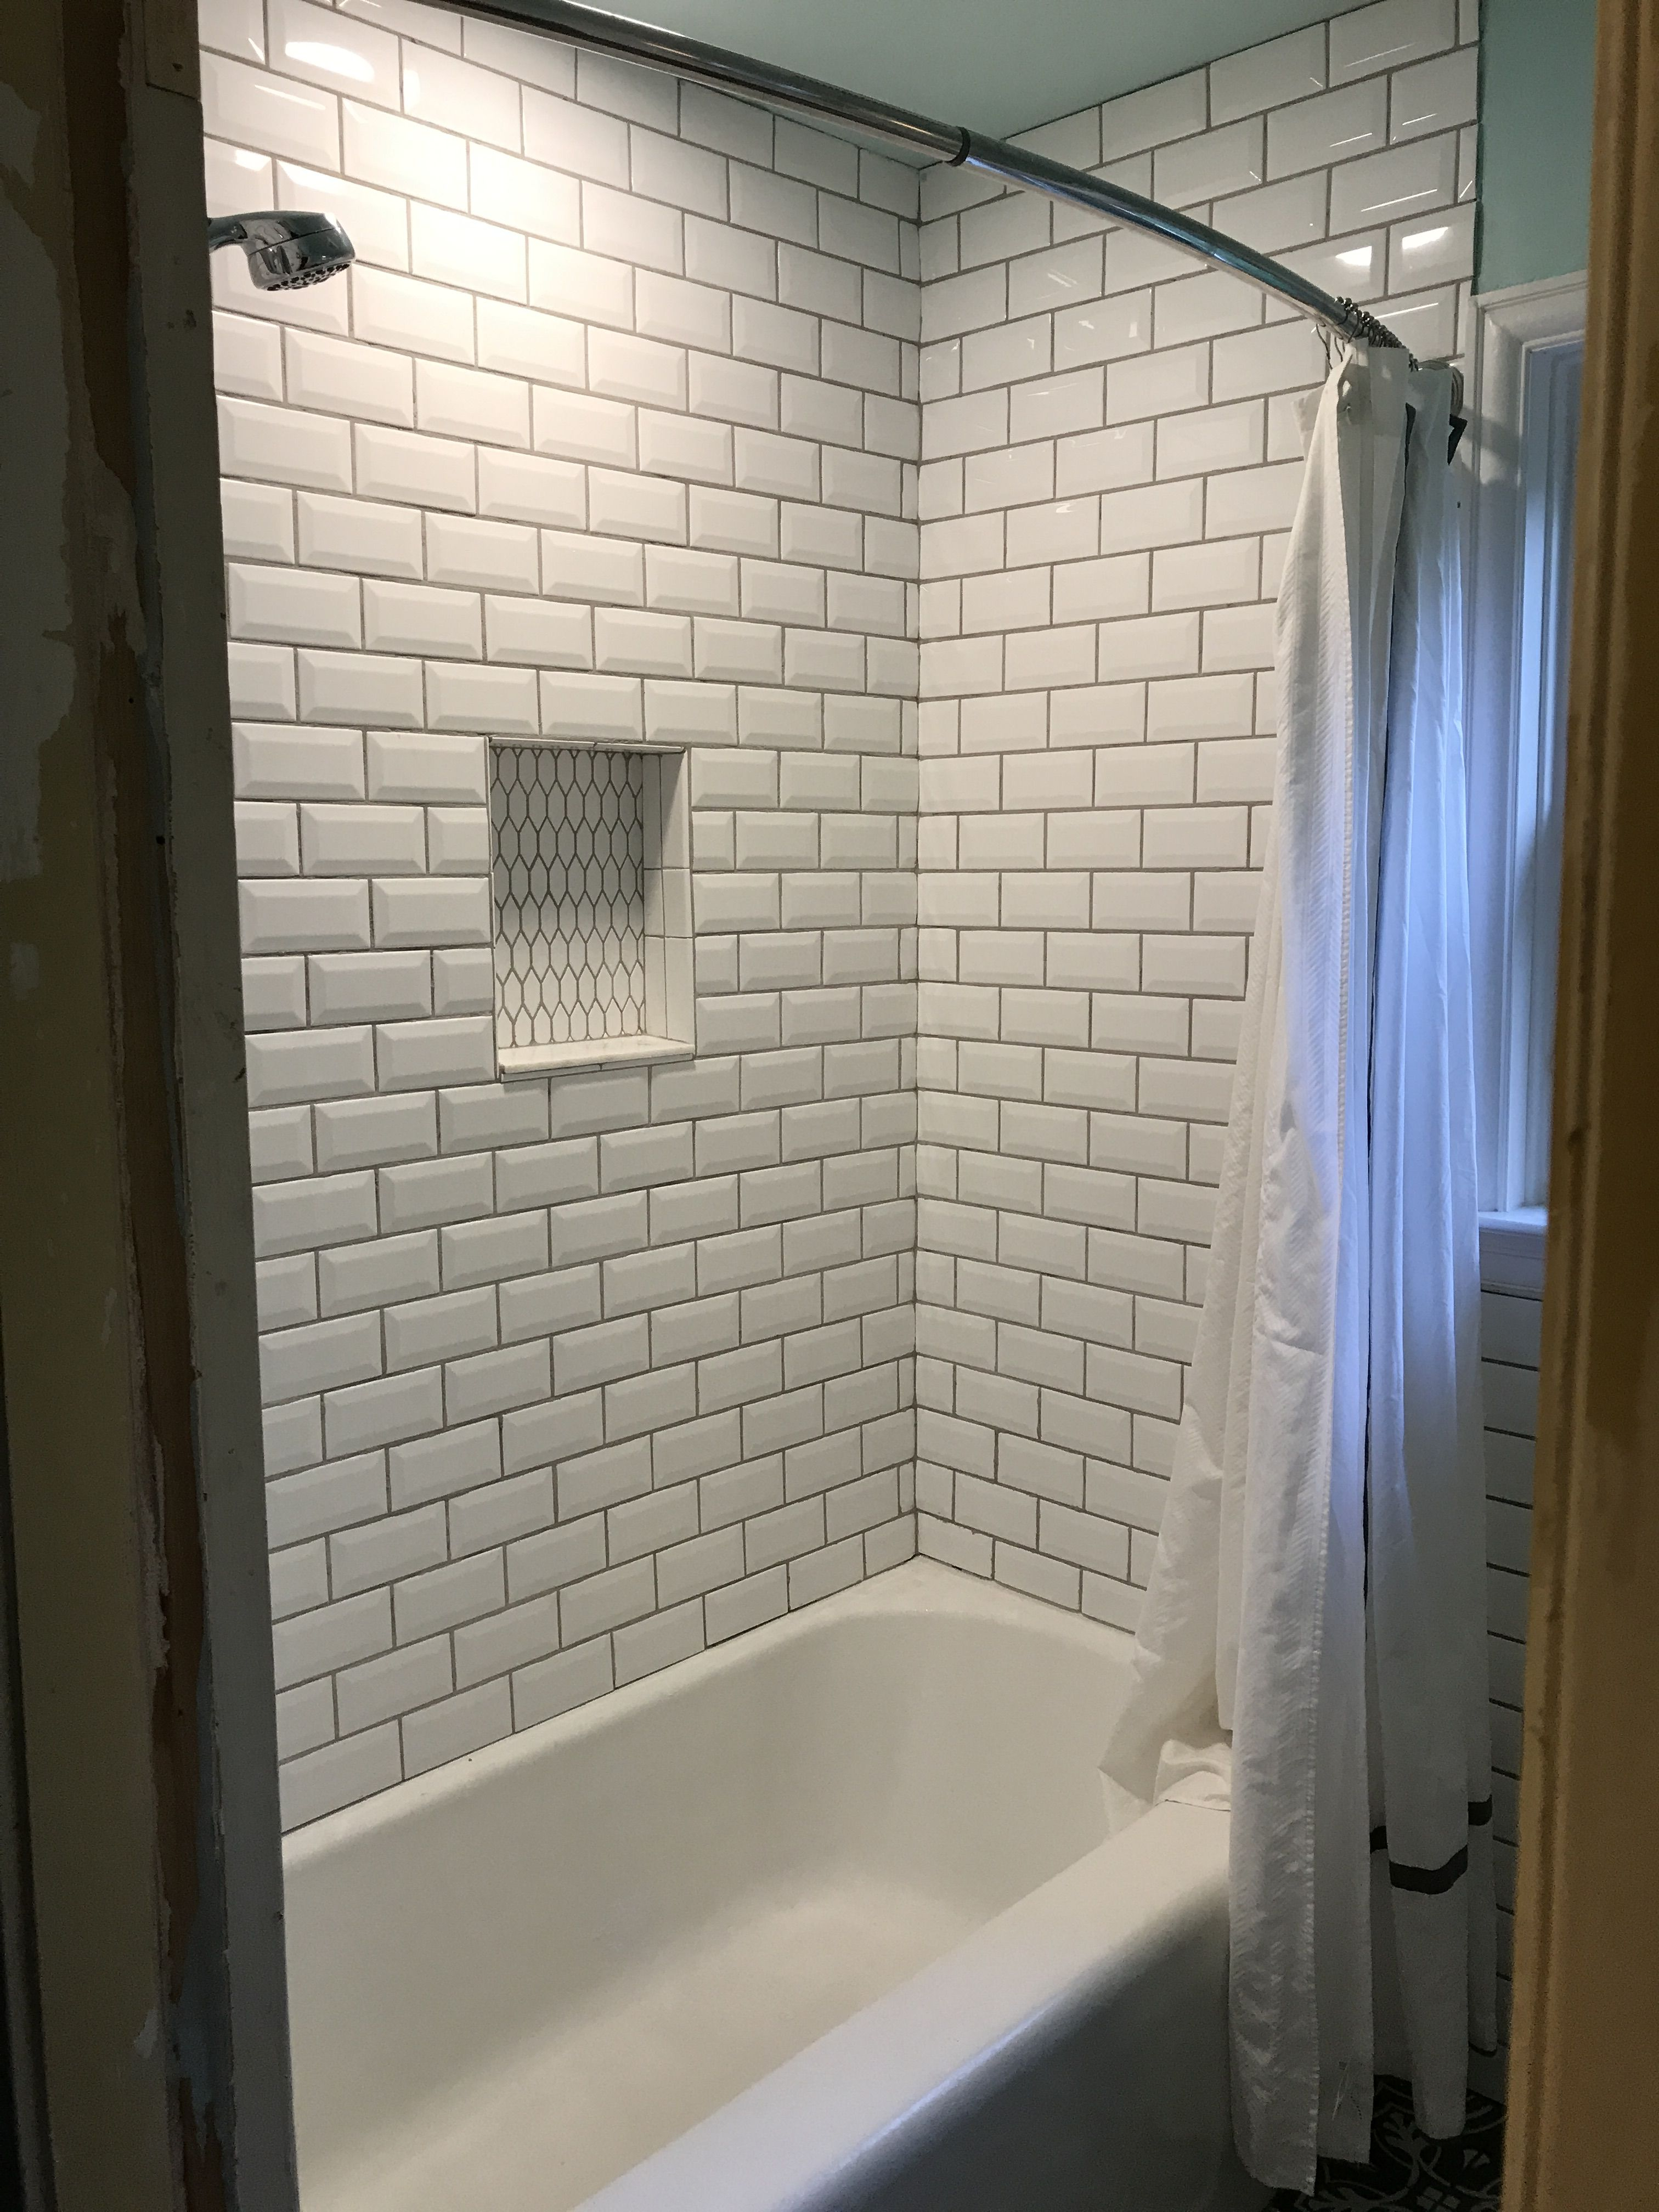 White Beveled Subway Tile Shower Niche In Our 1940 S Cape Cod Main Bathroom White Beveled Subway Tile Beveled Subway Tile Shower Beveled Subway Tile Bathroom